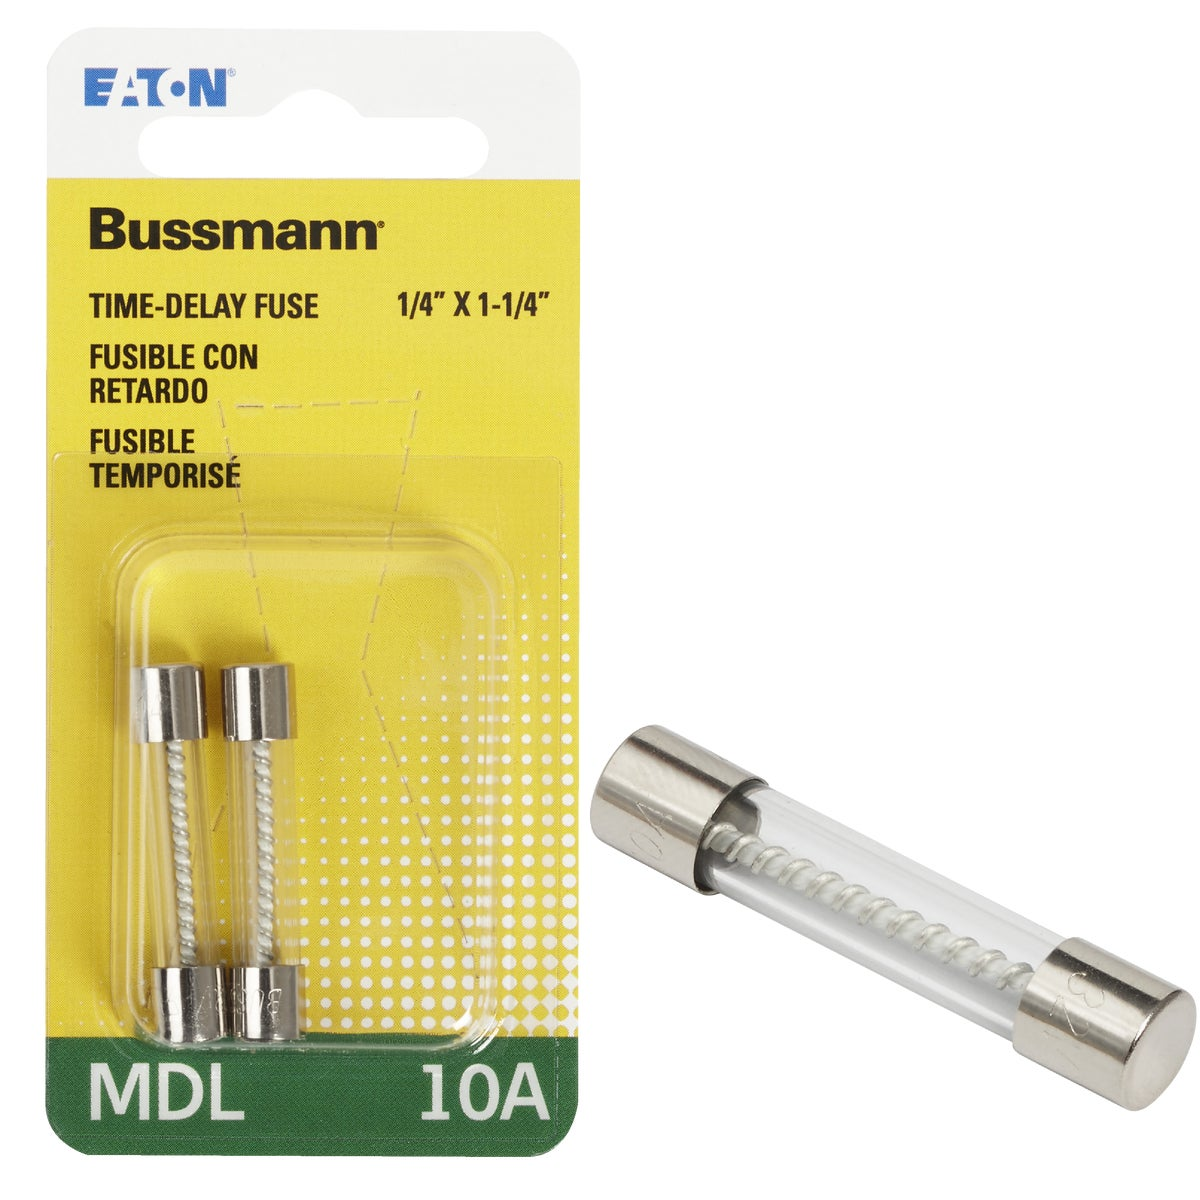 Bussmann 10A MDL Glass Tube Electronic Fuse (2-Pack)